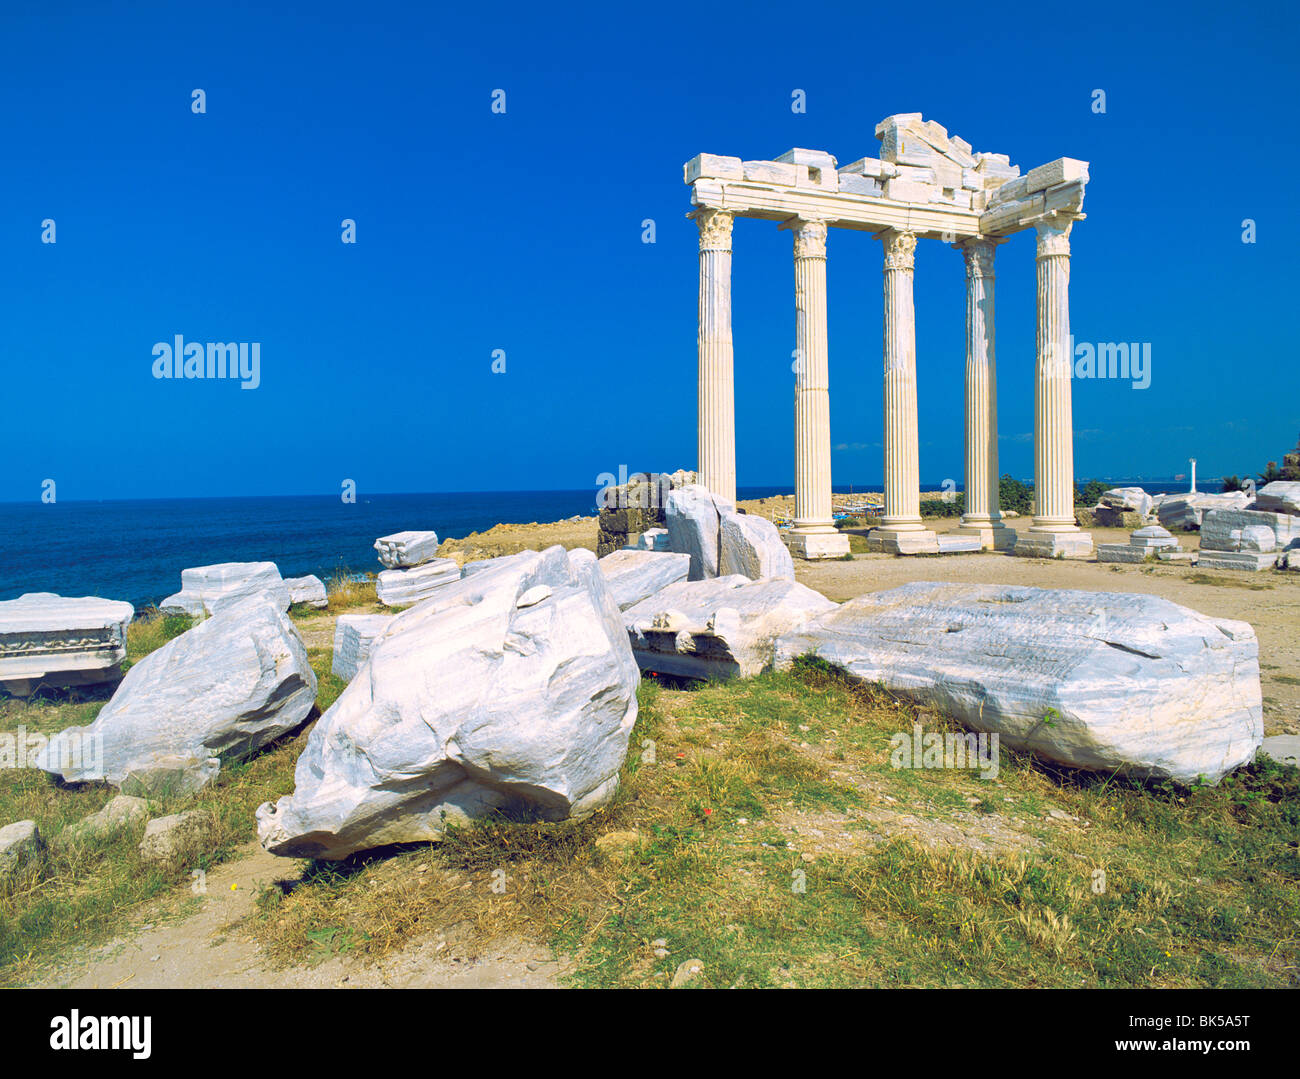 Vestiges romains du Temple d'Apollon, Côté, Anatalya Province, Anatolie, Turquie, Asie mineure, l'Eurasie Photo Stock